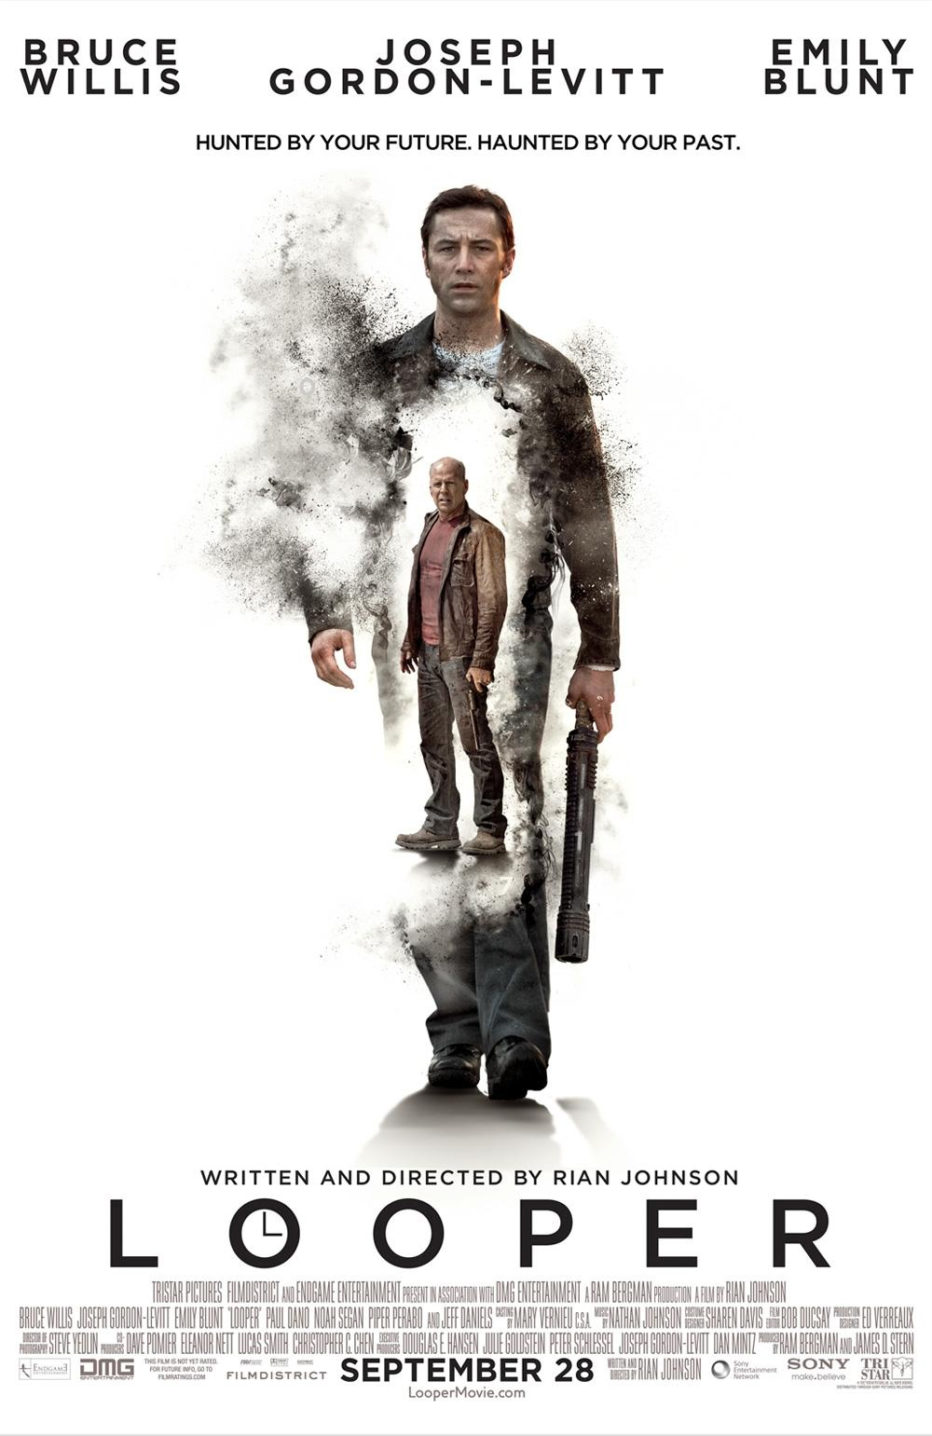 Looper. Joseph Gordon-Levitt vs Bruce Willis. Trailer y Poster